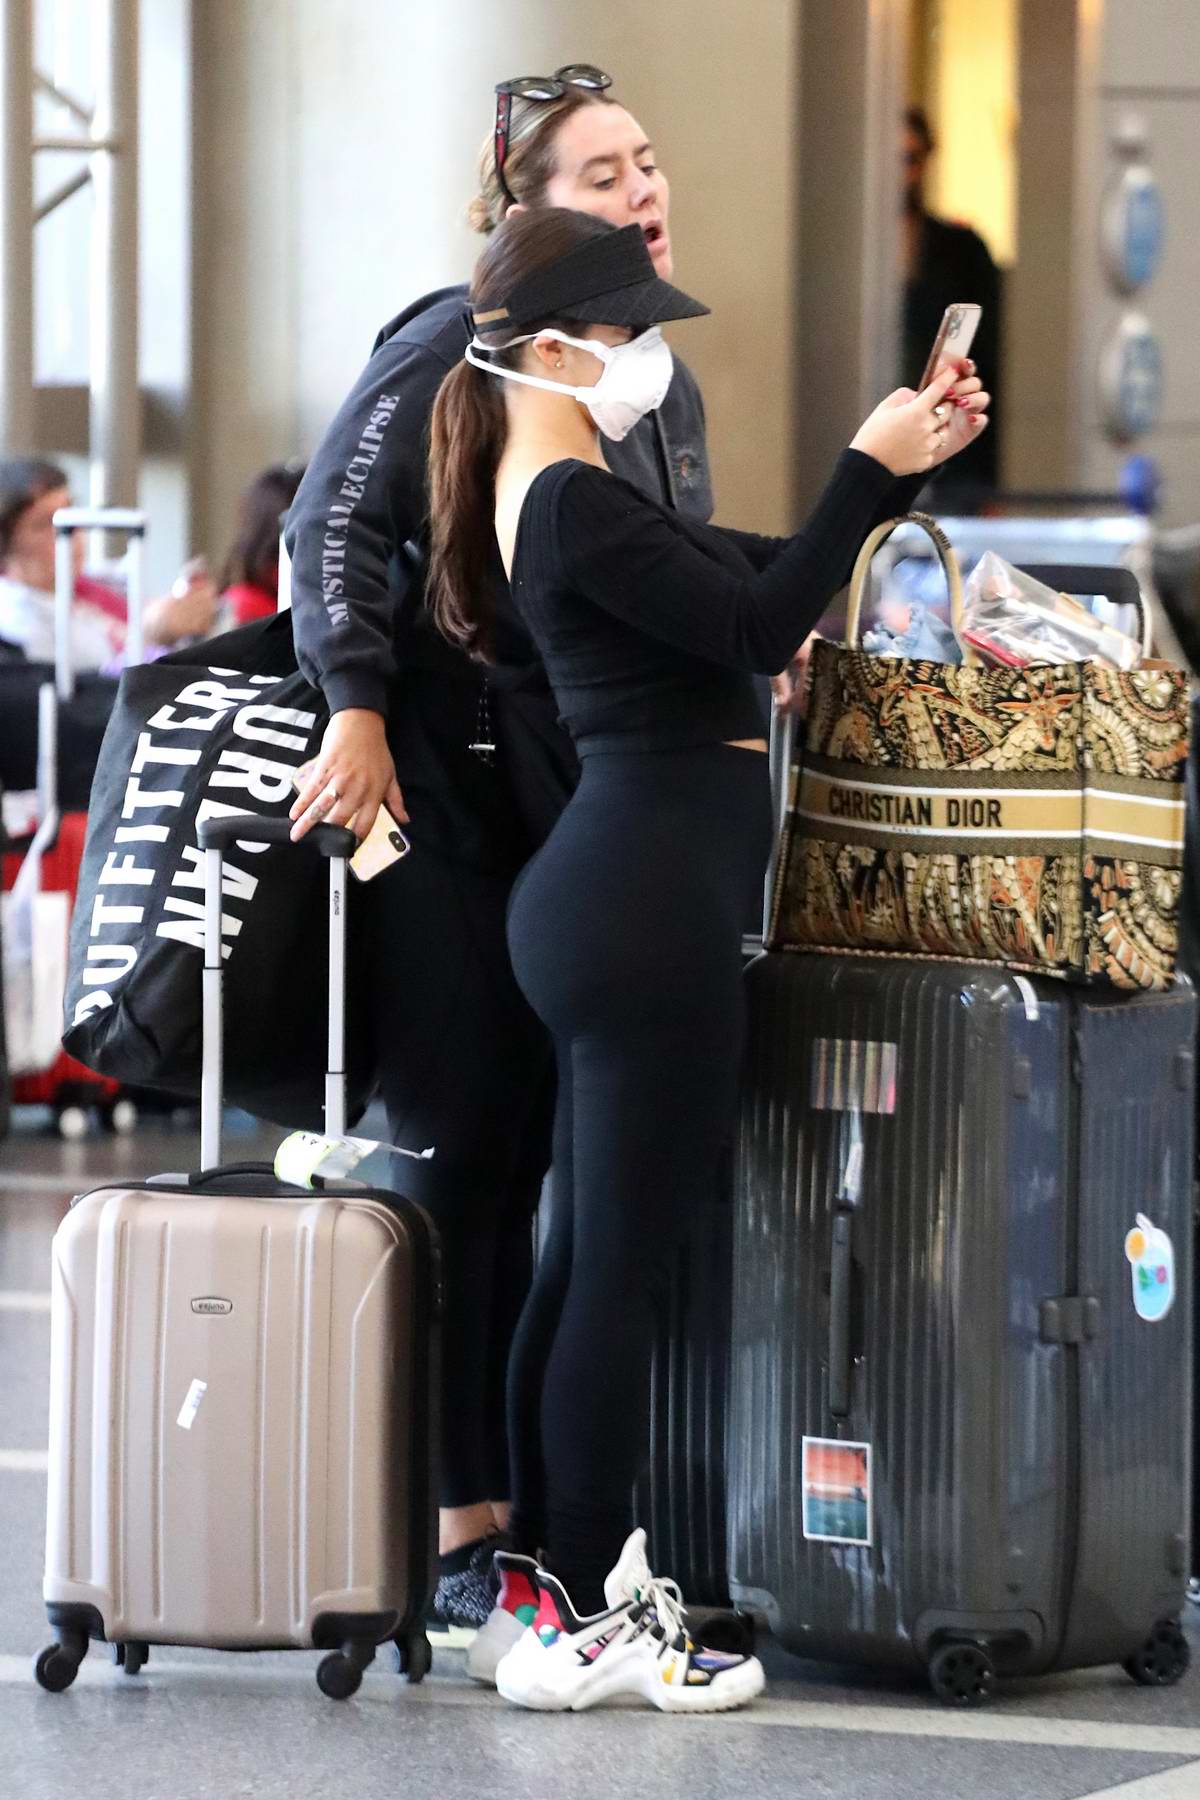 Demi Rose seen wearing a black crop top and leggings with a face mask as she jets out of LAX in Los Angeles